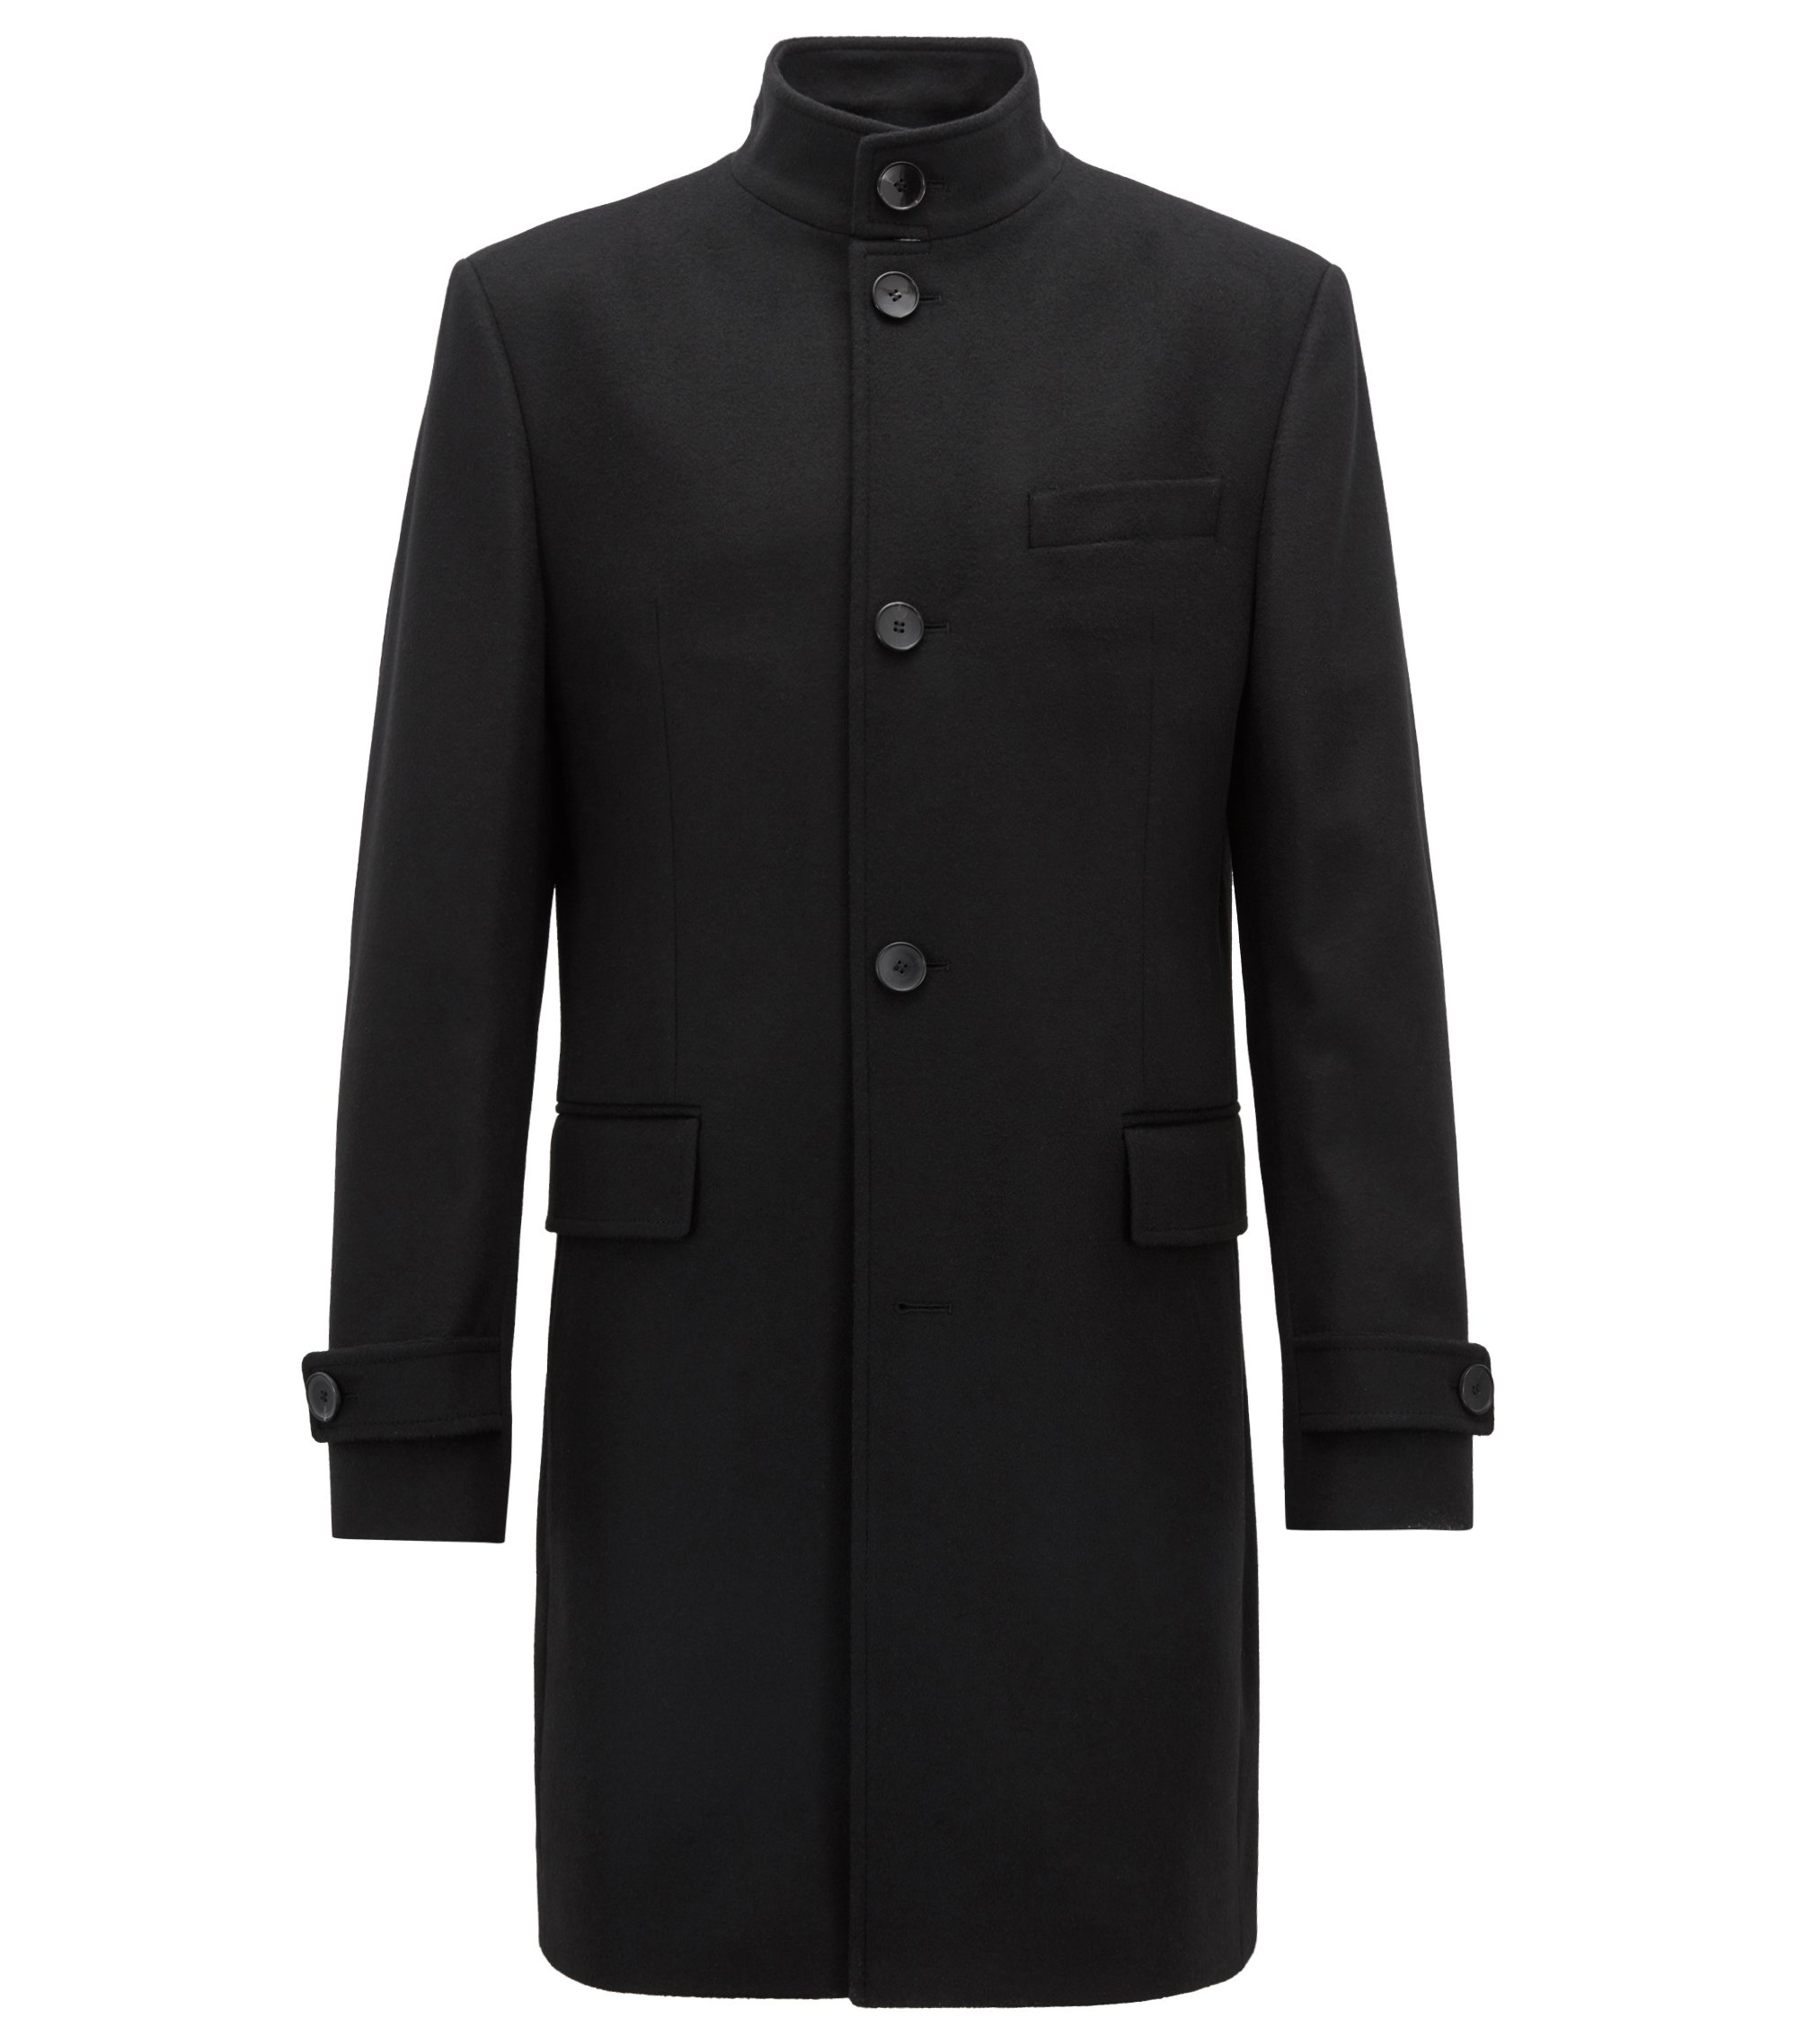 Stand-collar coat in virgin wool blended with cashmere, Black